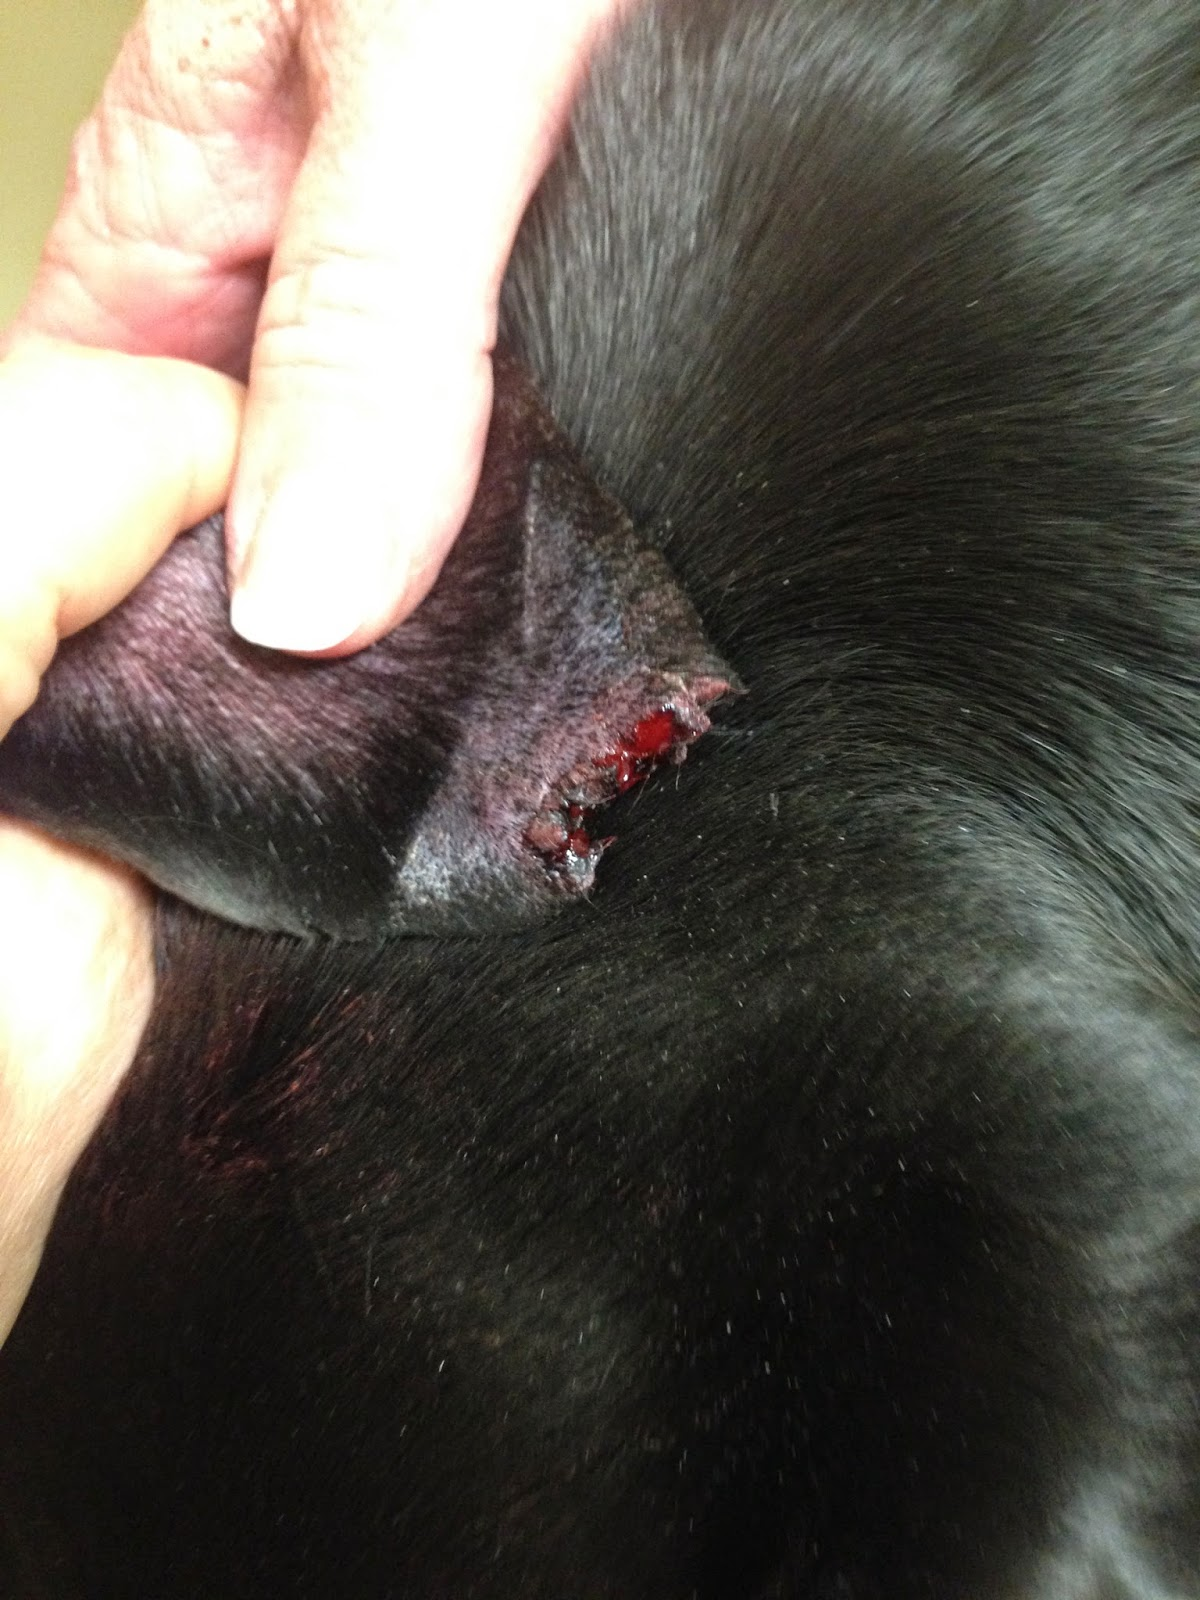 How To Treat Sores On Dogs Ears